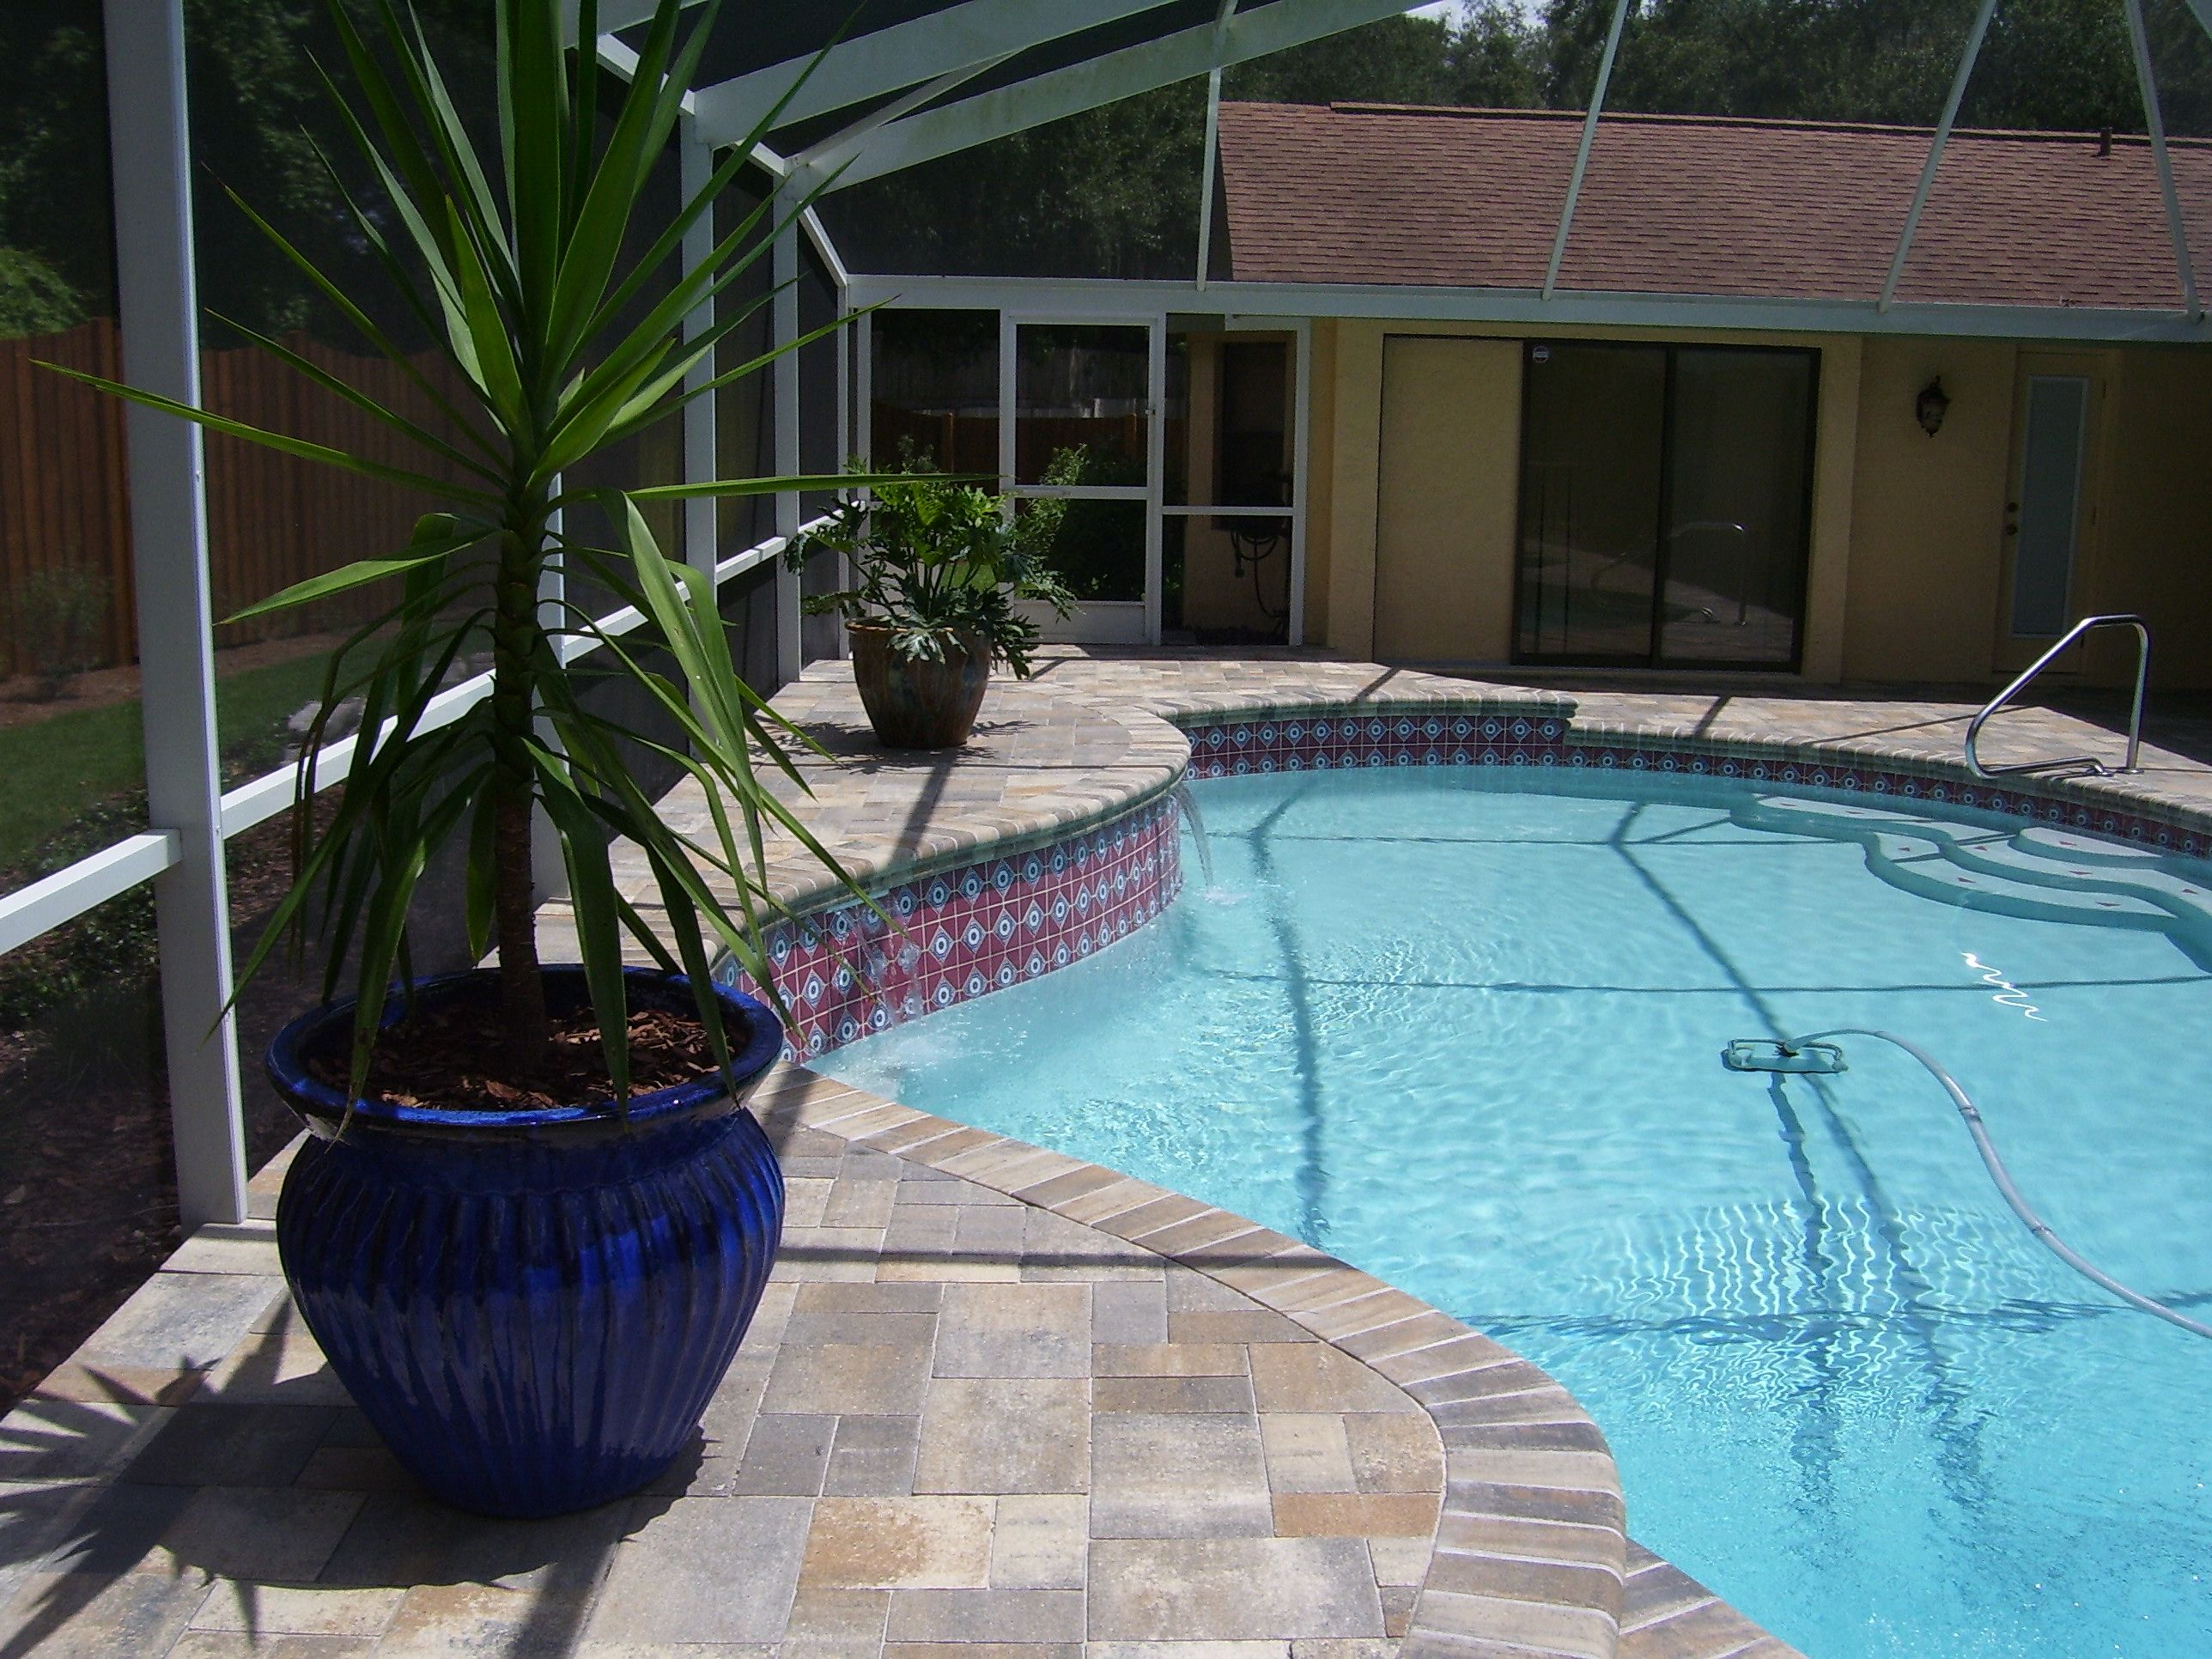 Brick Paver Pool Deck Makes The Pool Deck Look So